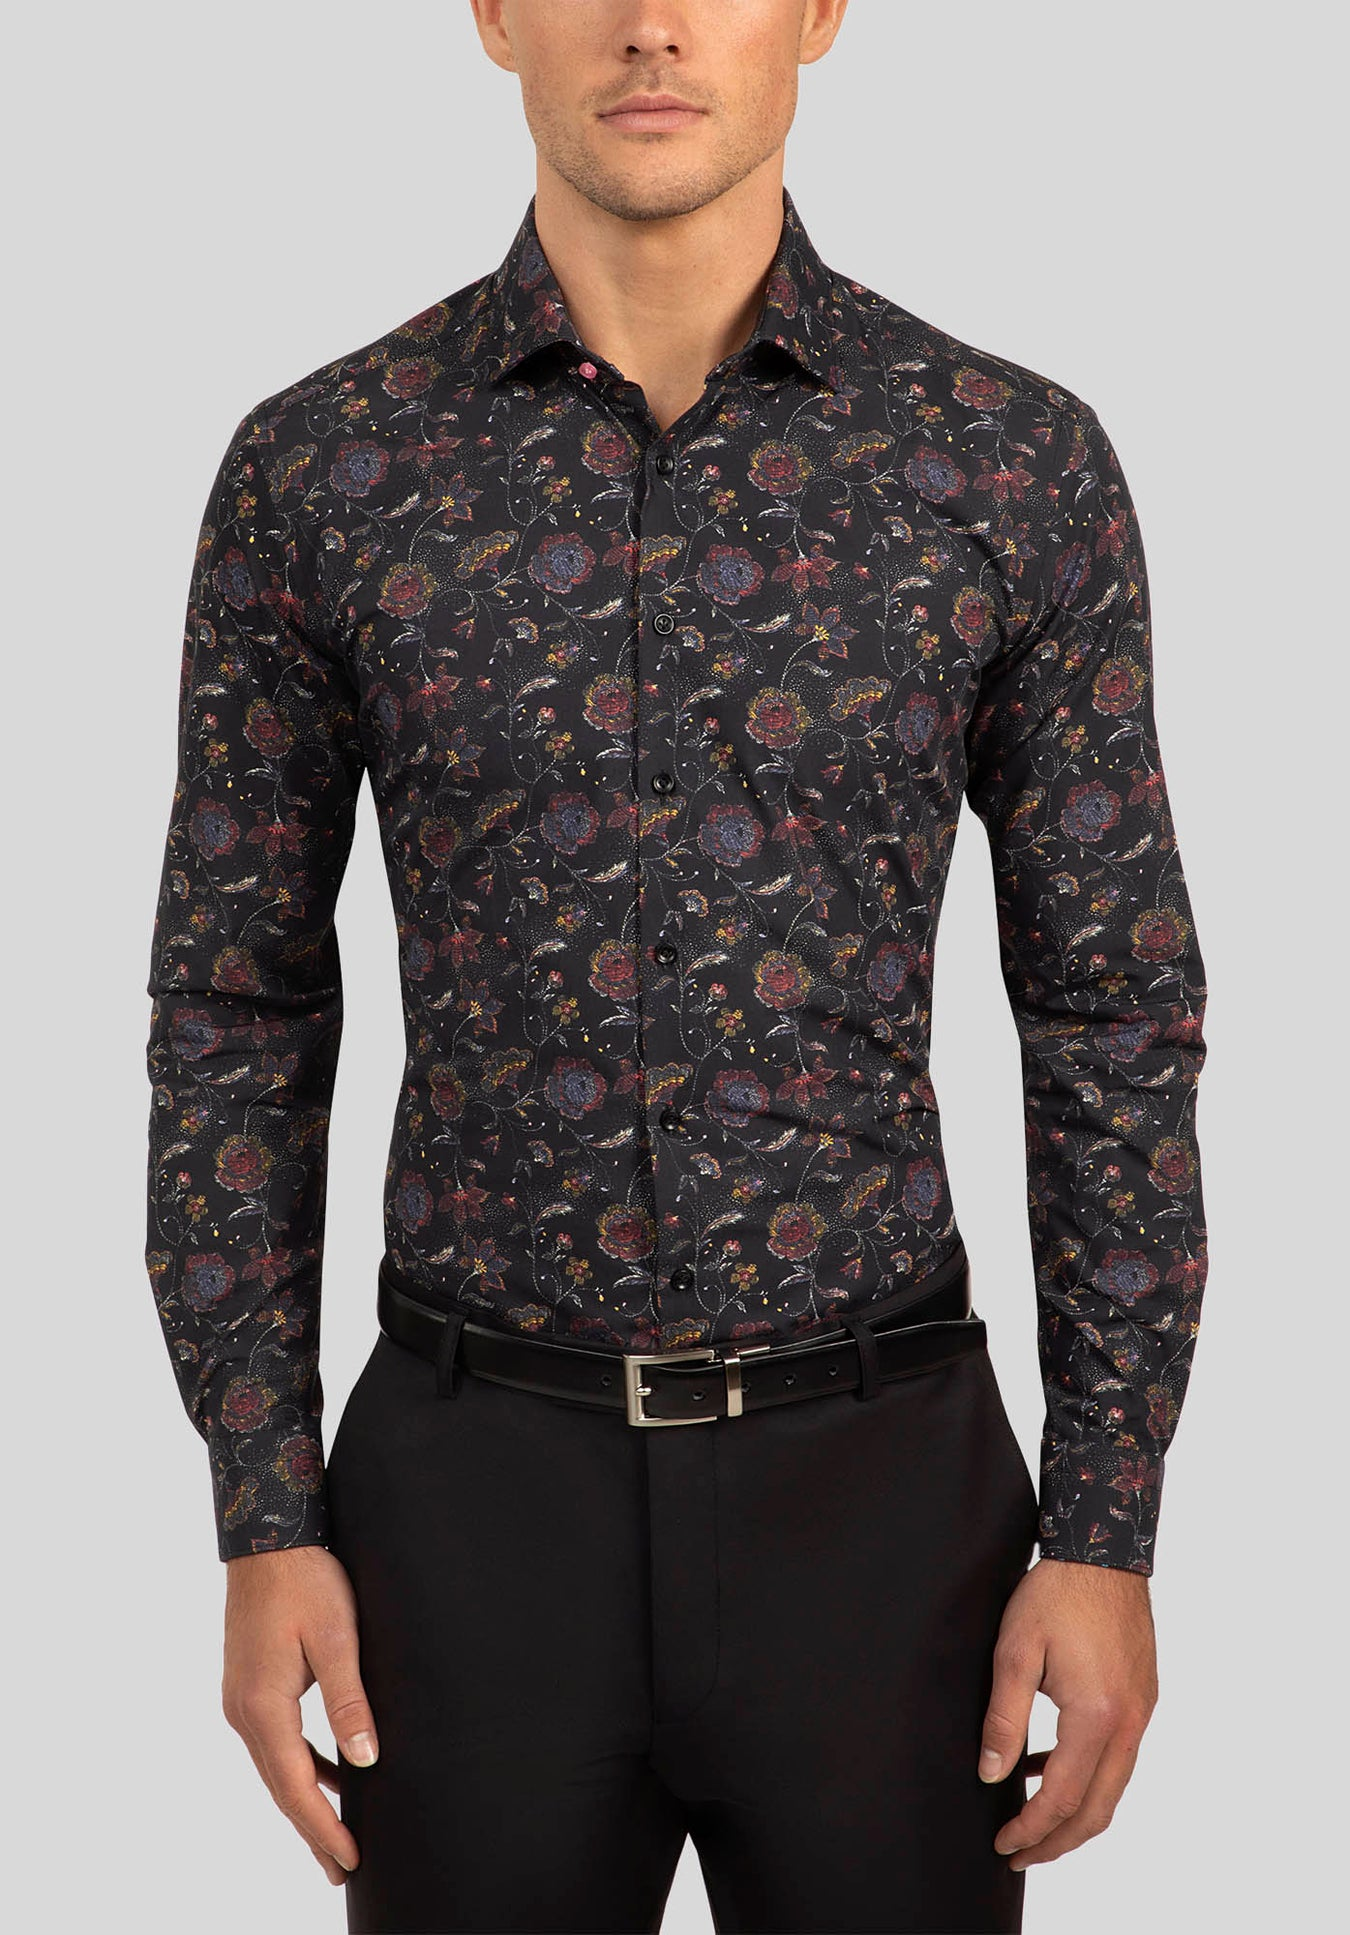 MOTION SHIRT FGJ636 - Black